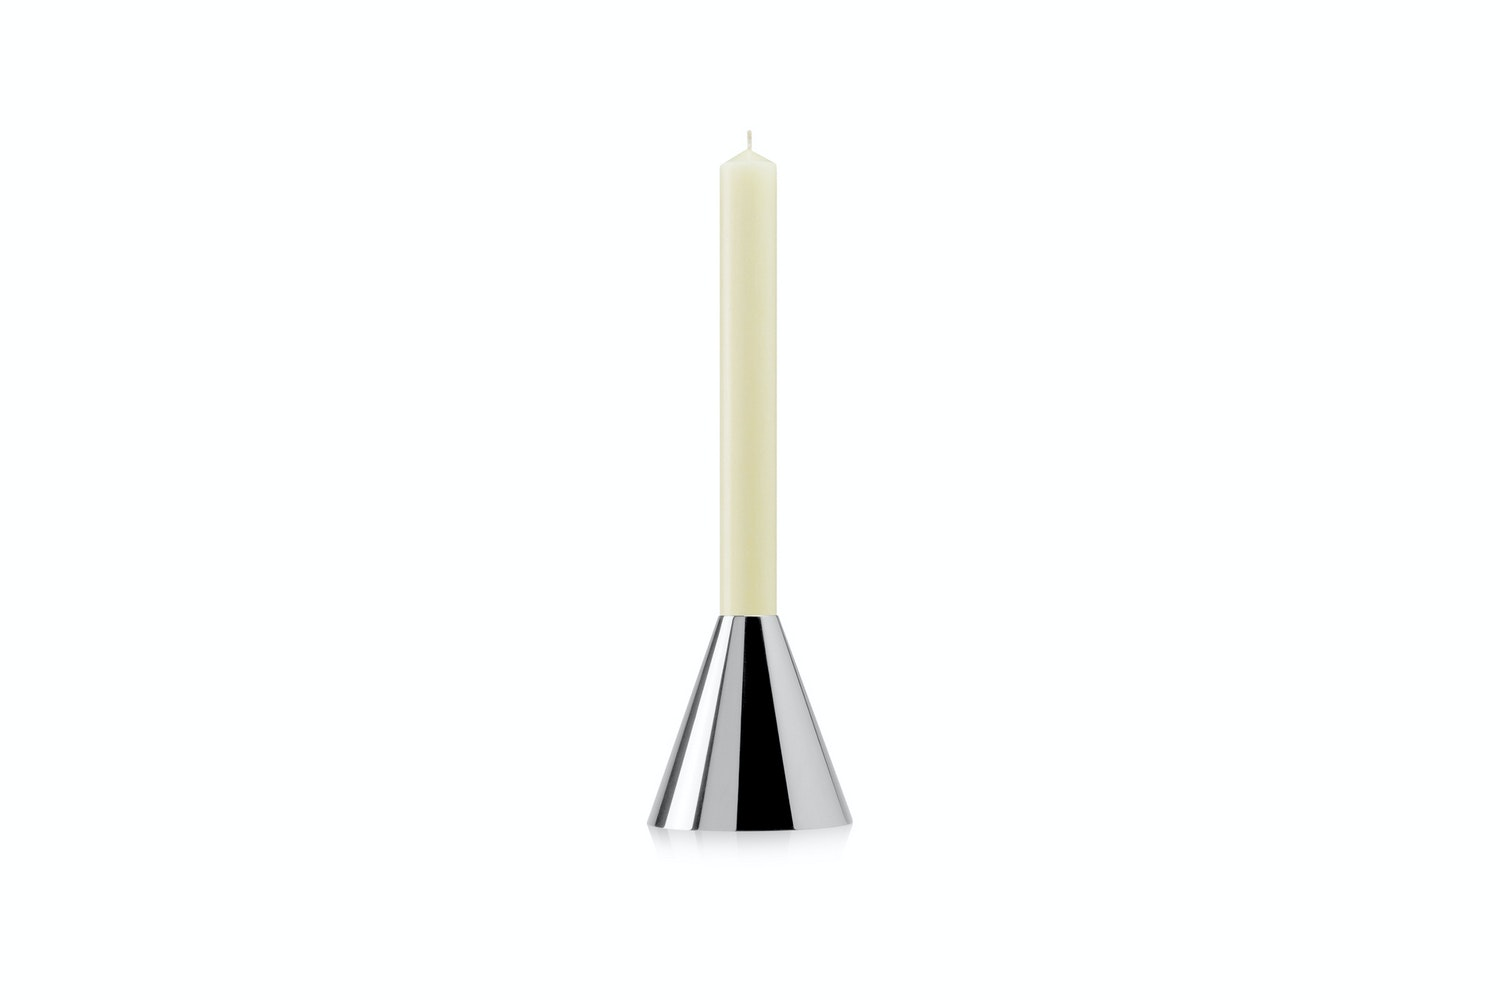 A Candleholder - Aluminium by Minimalux